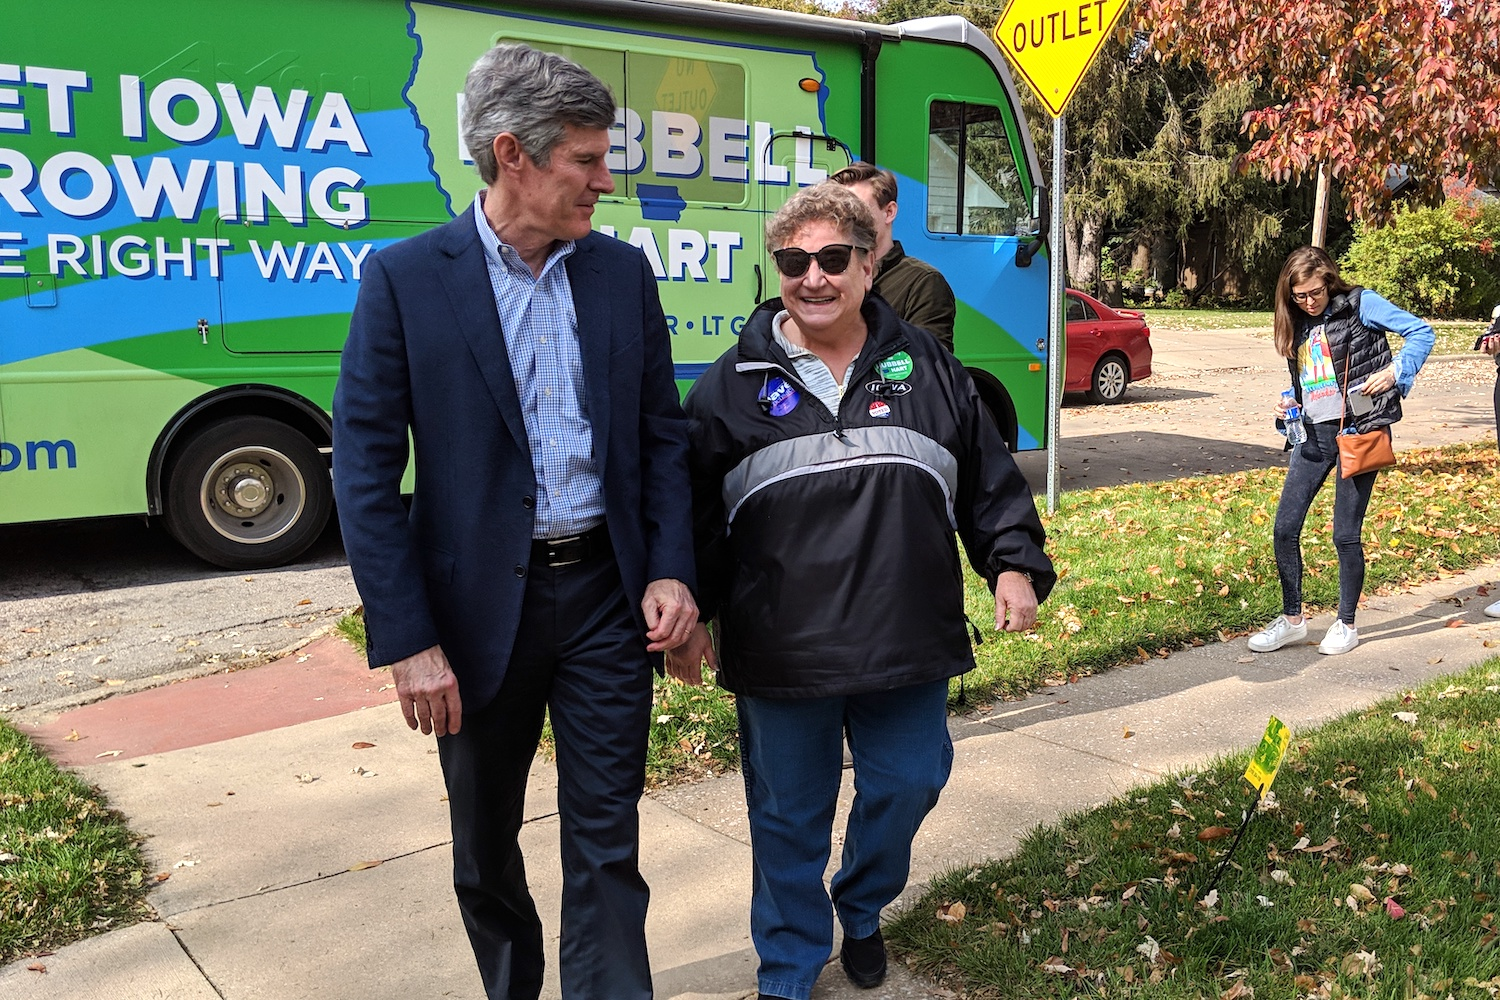 Democratic candidate for governor Fred Hubbell stops by a canvassing event in Iowa City on Oct. 27. Walking with him is Iowa representative Mary Mascher, of Iowa City.